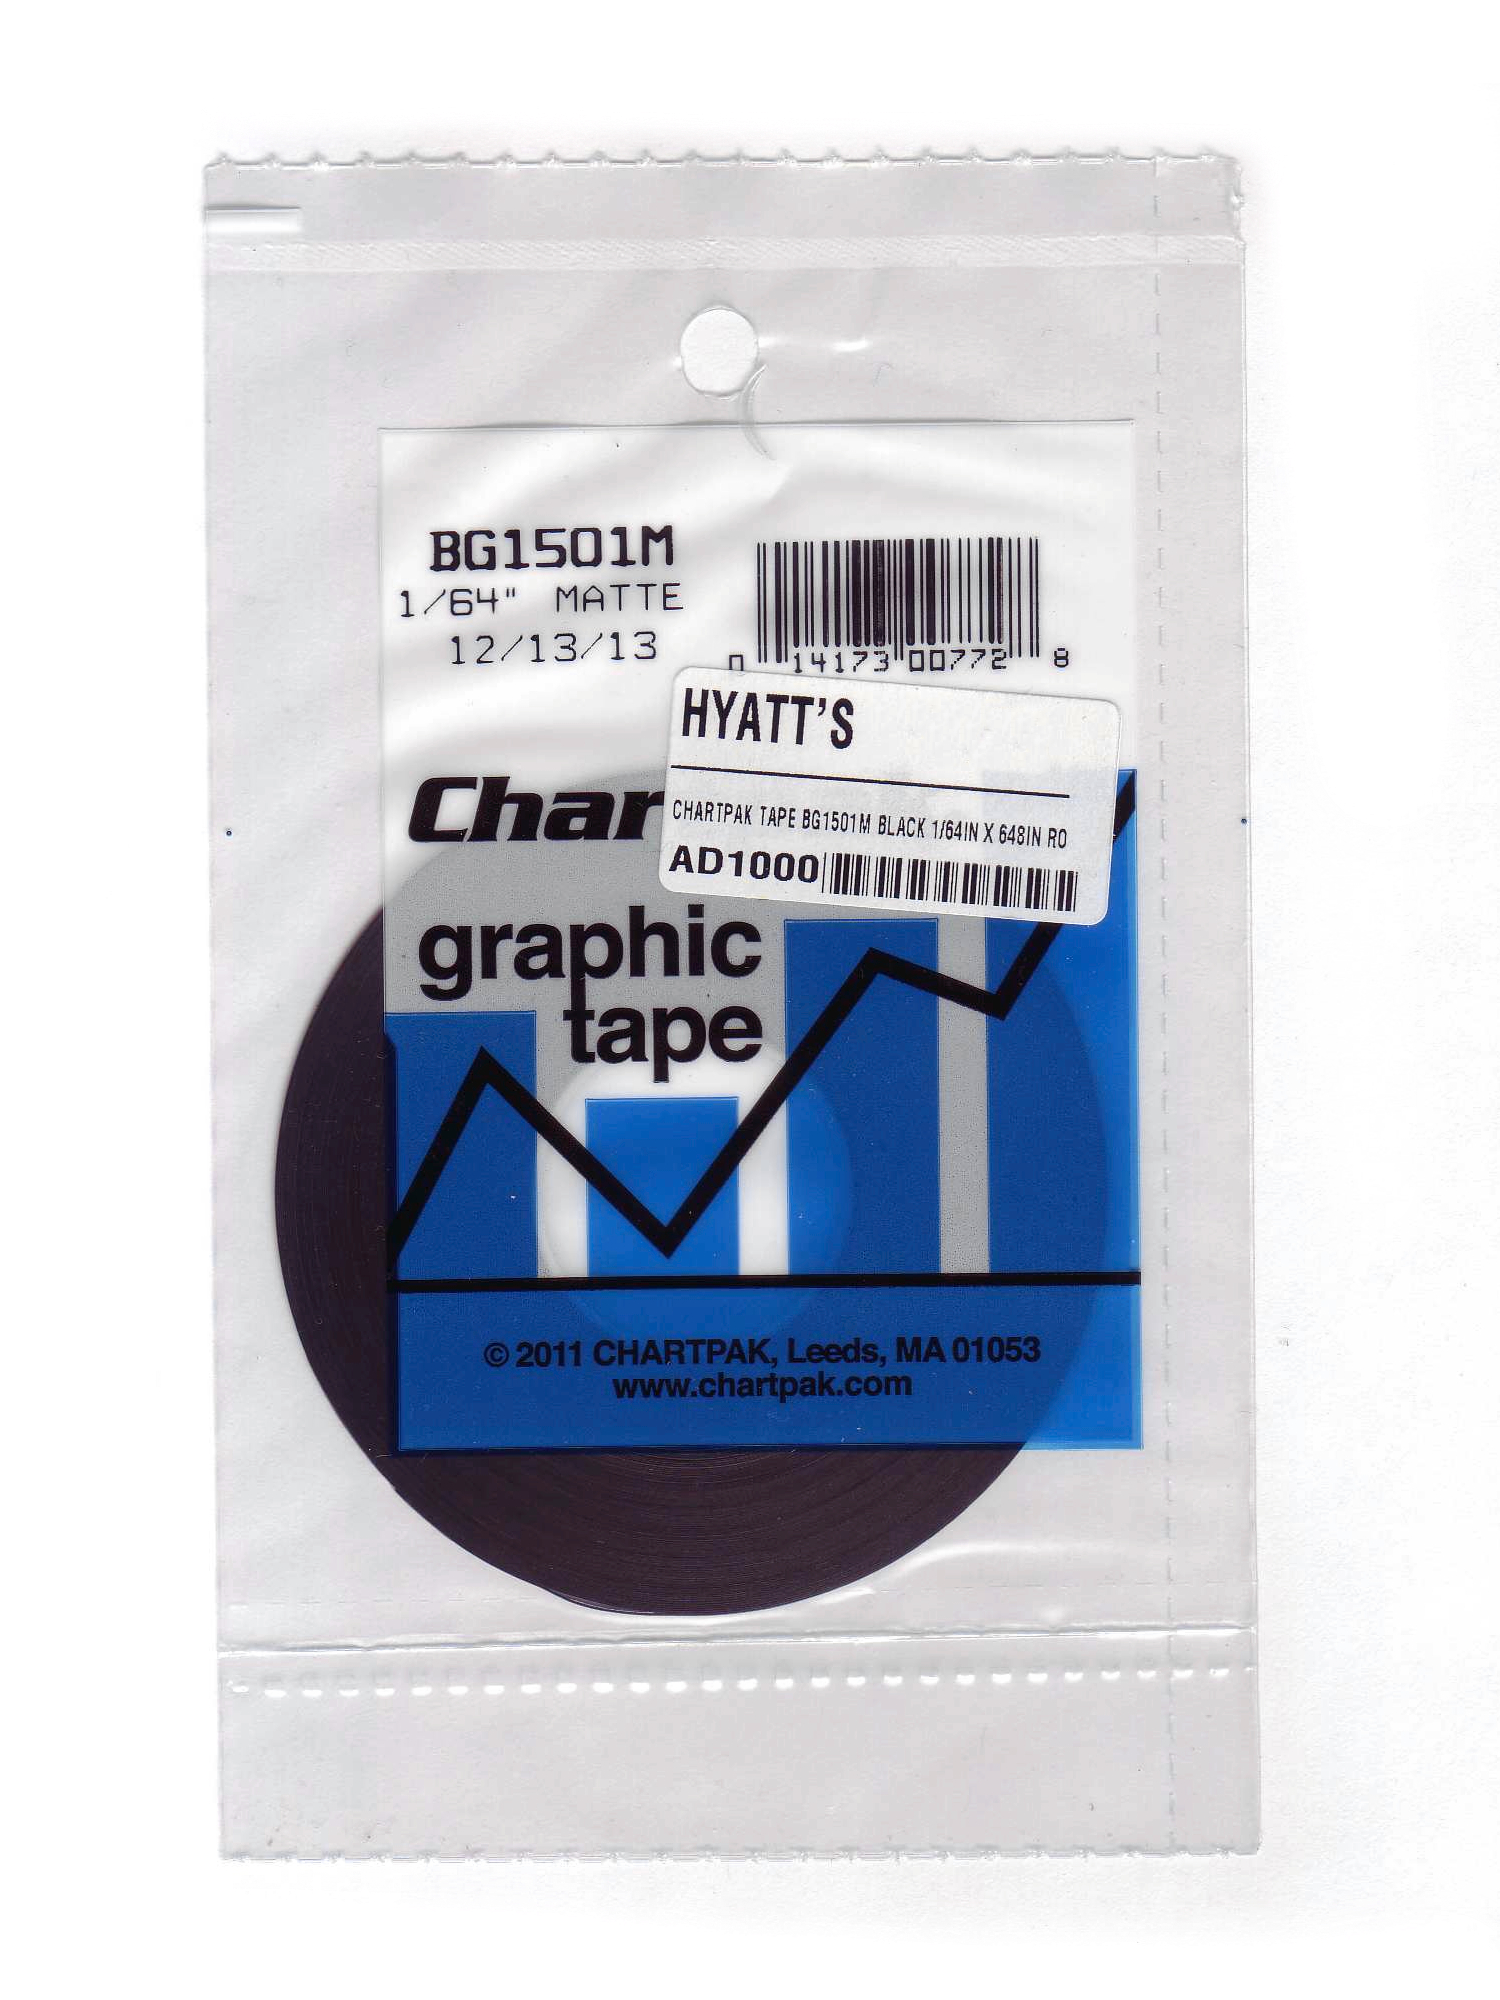 chartpak graphic tapes